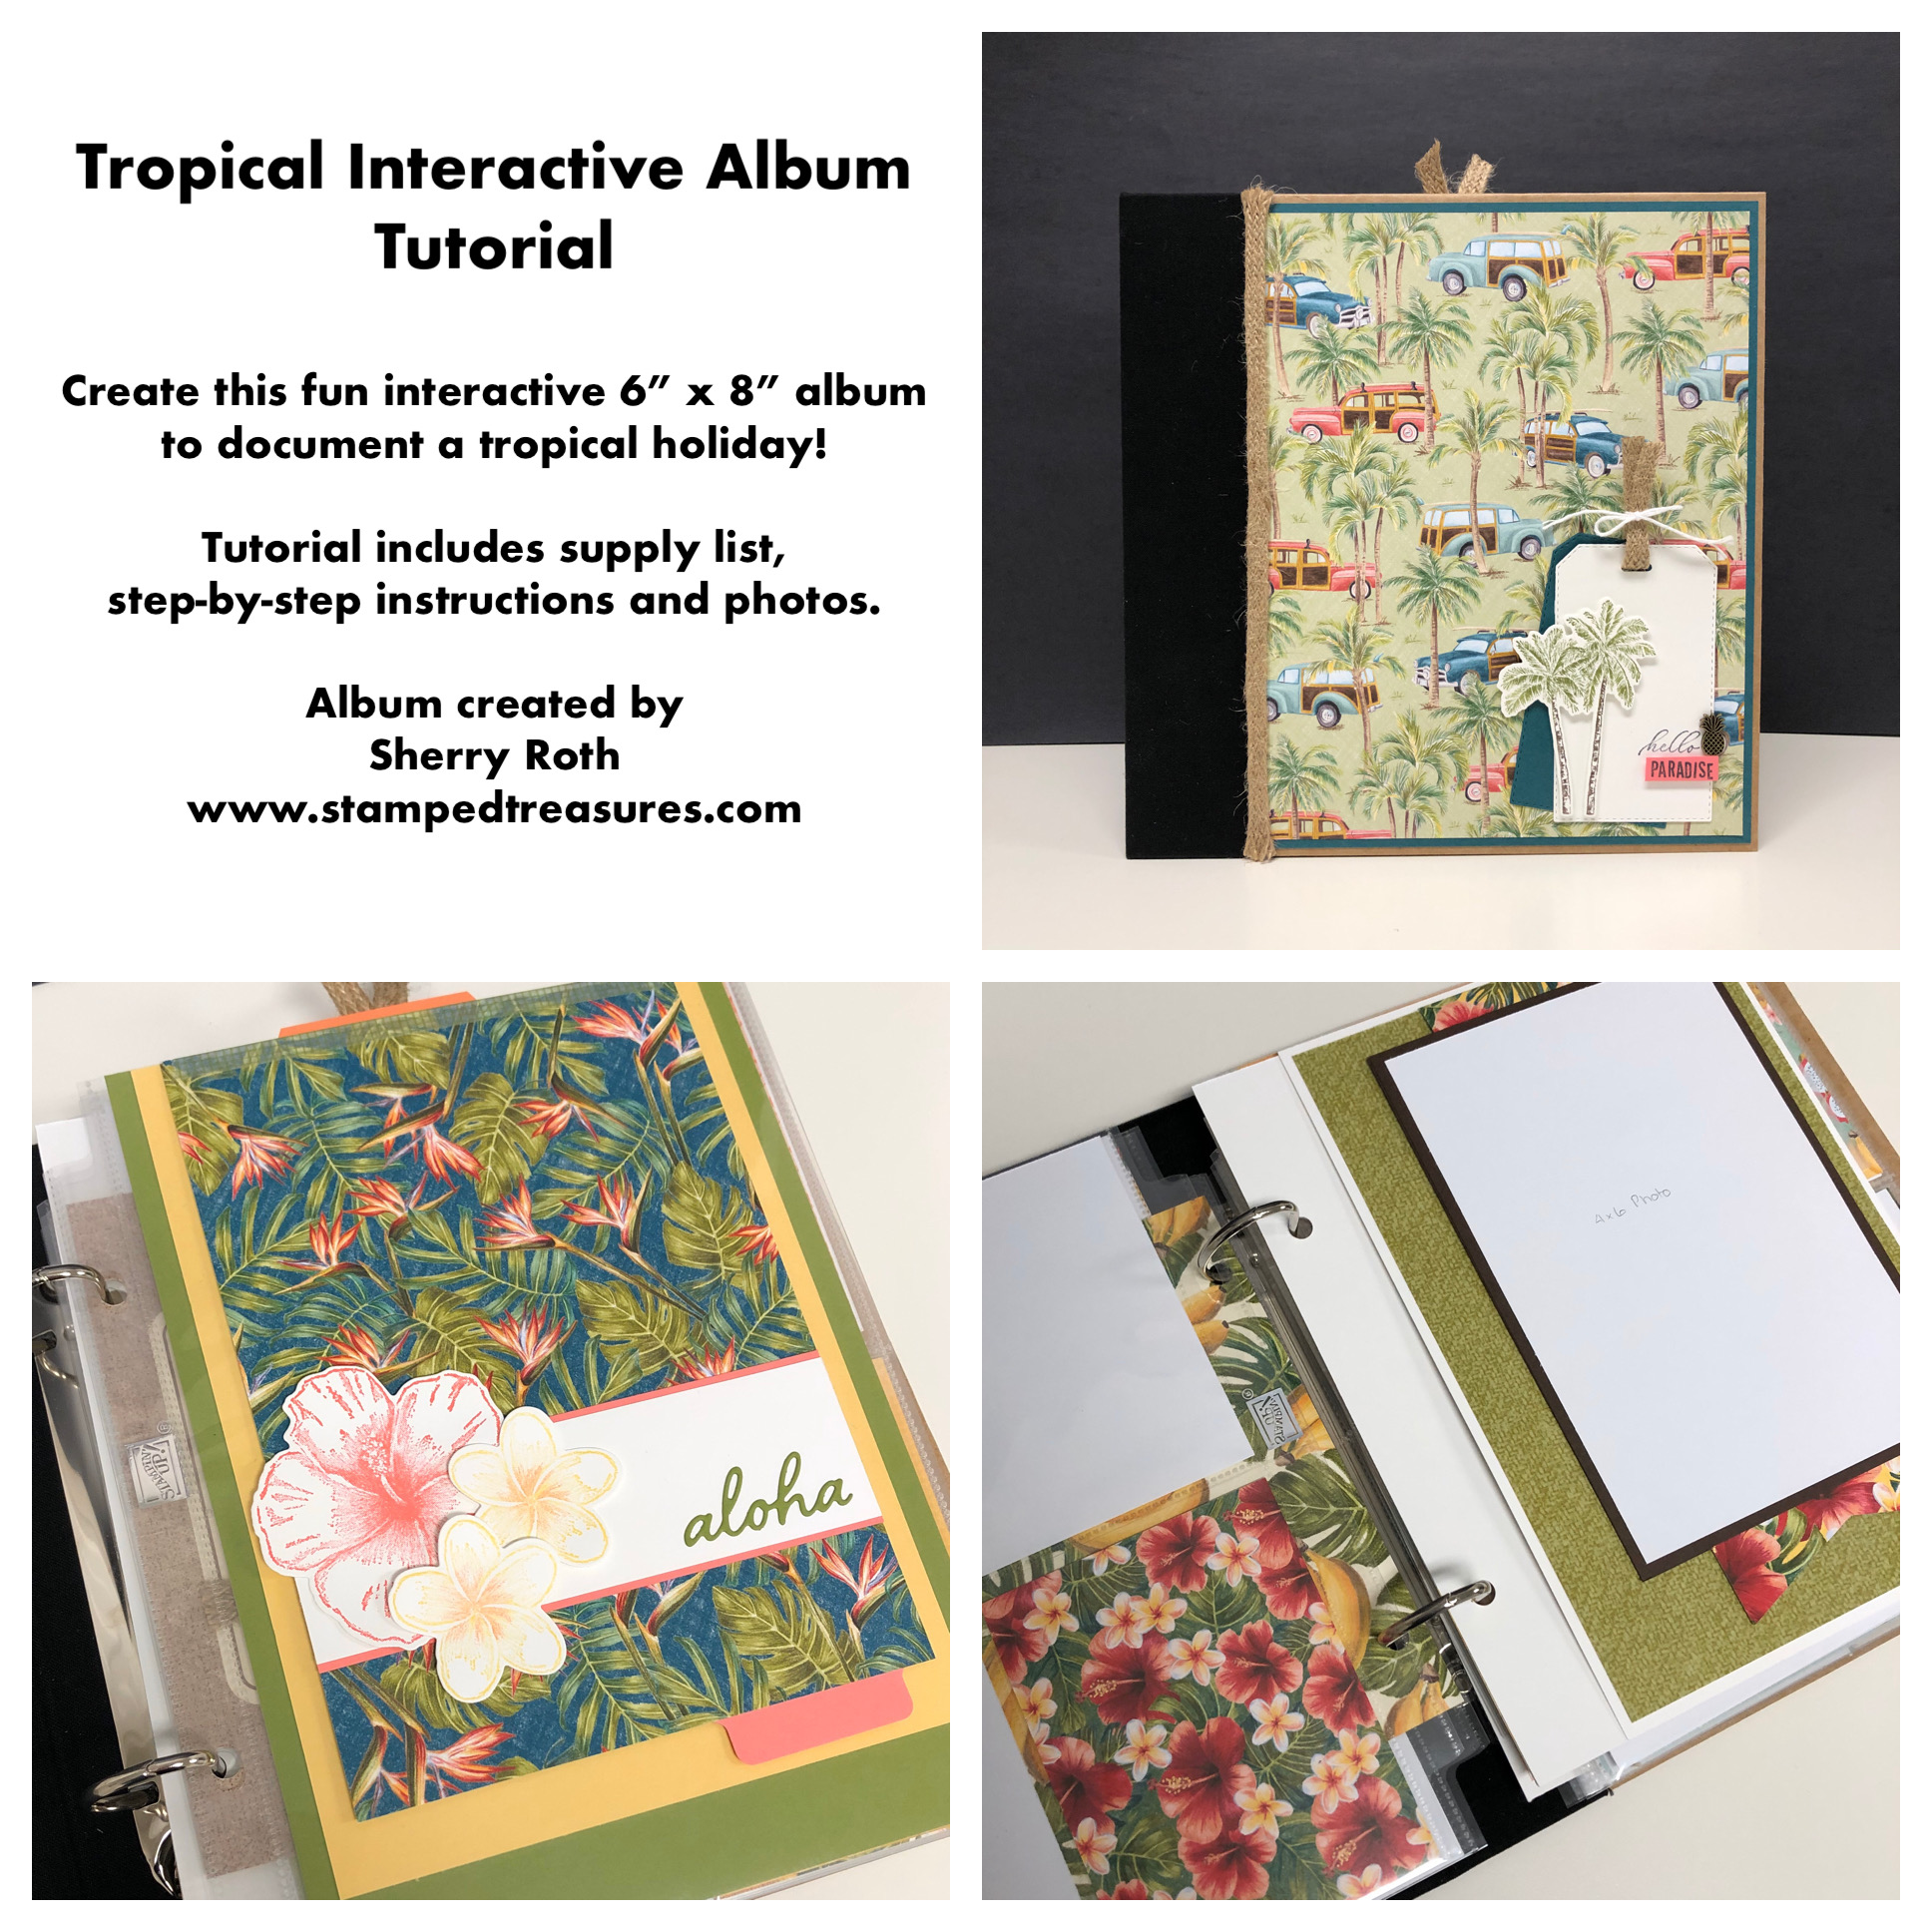 Tropical Interactive Album